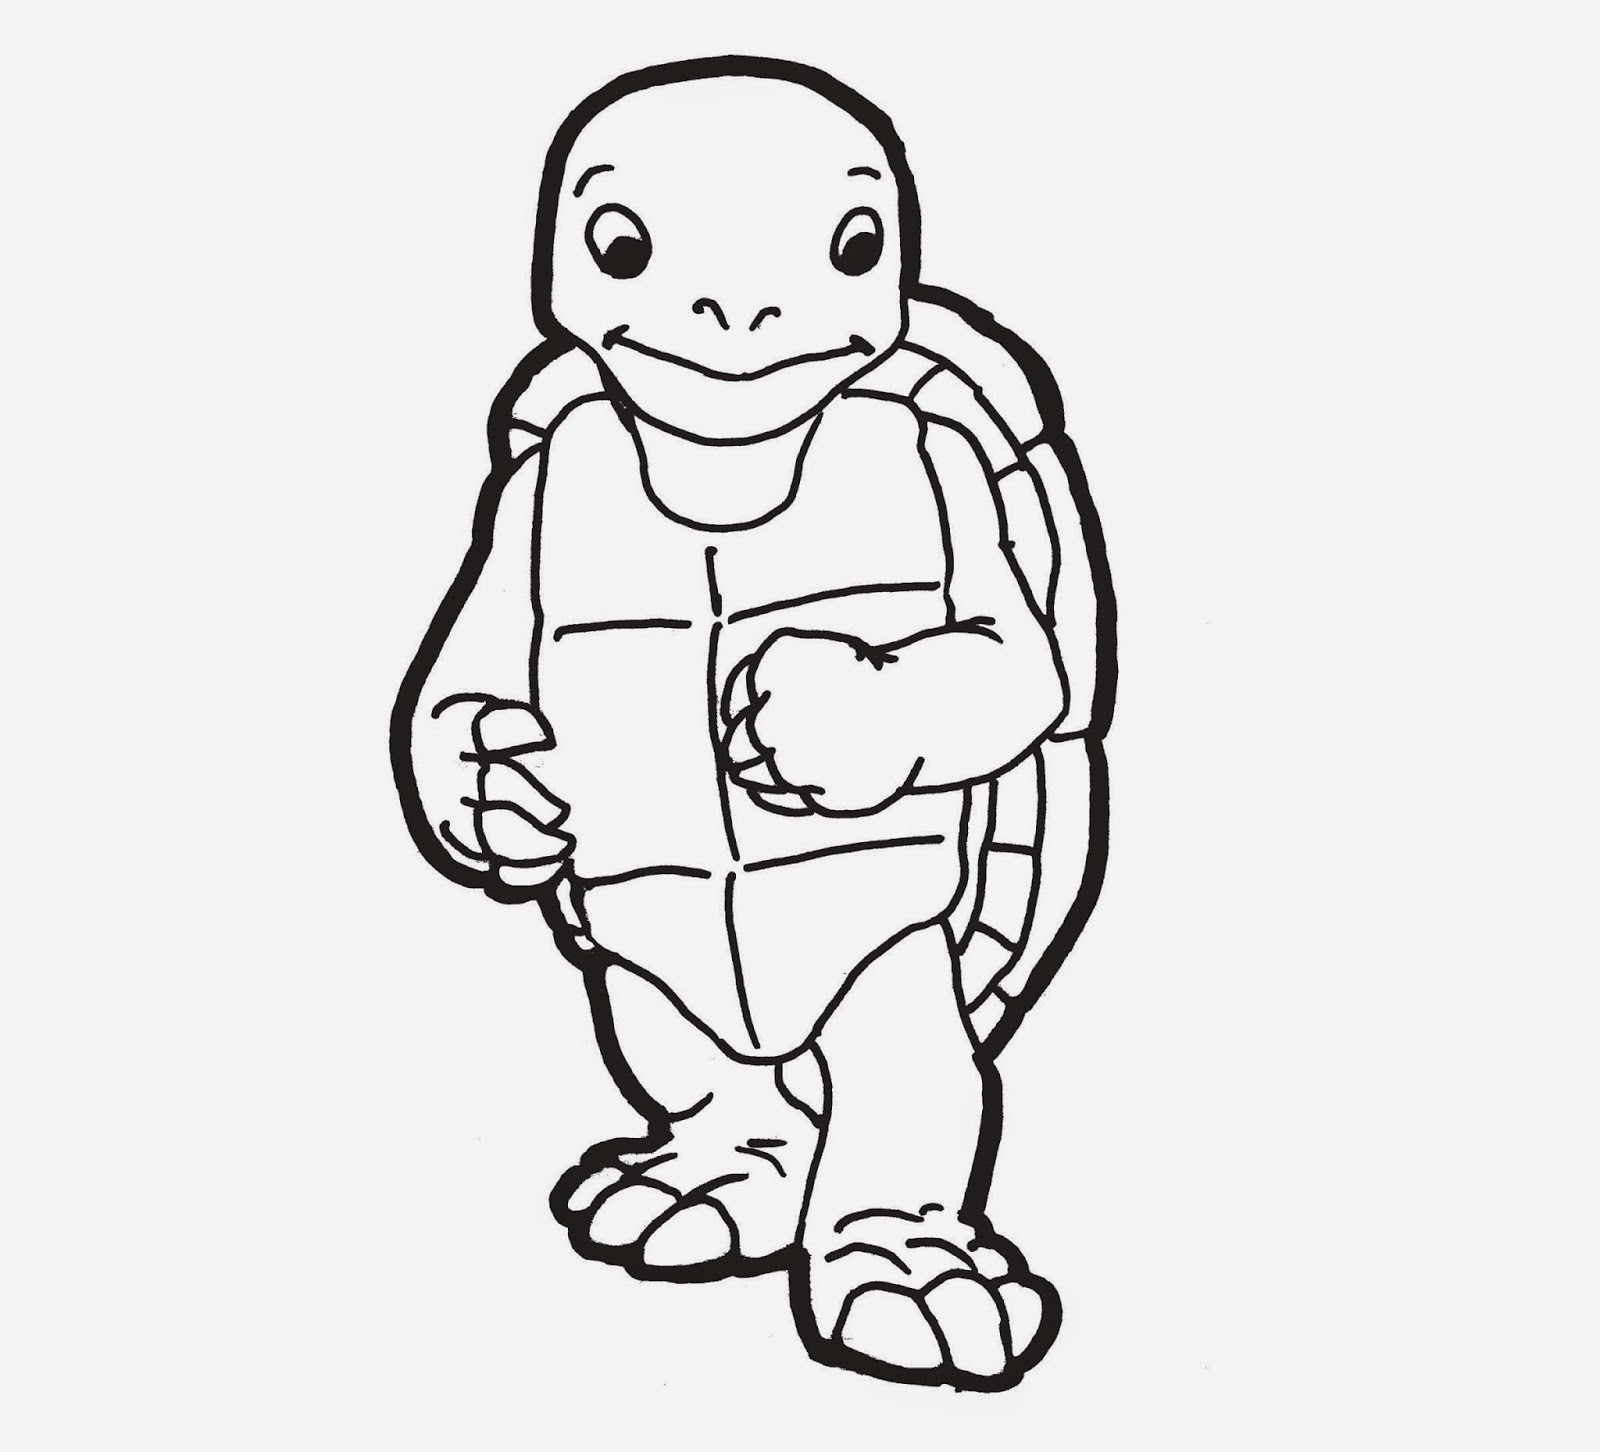 Coloring pages turtles free printable coloring pages for Coloring page turtle